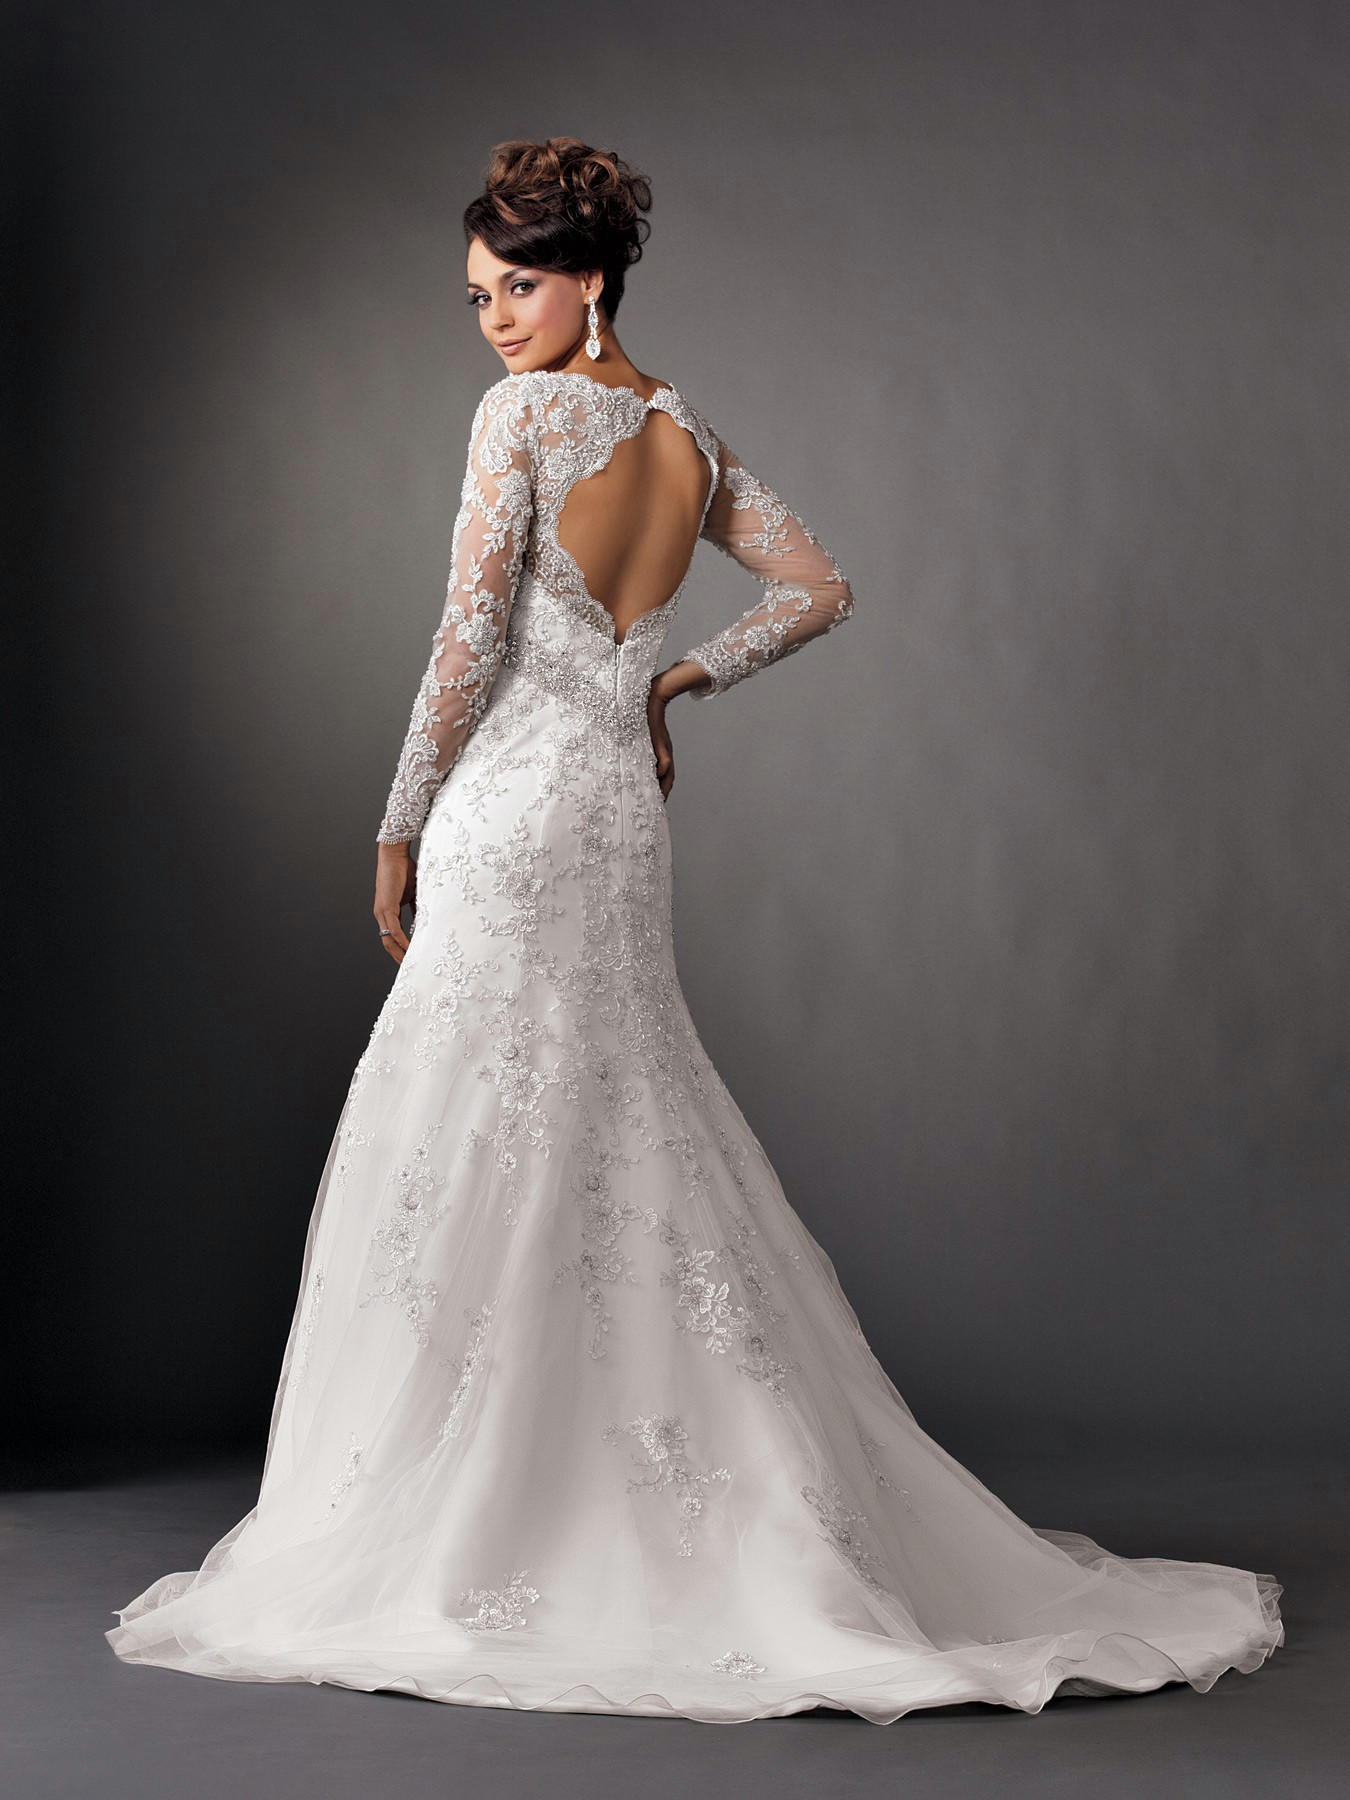 Wedding Dresses  Lace Sleeves : Wedding dress trends lace sleeves dipped